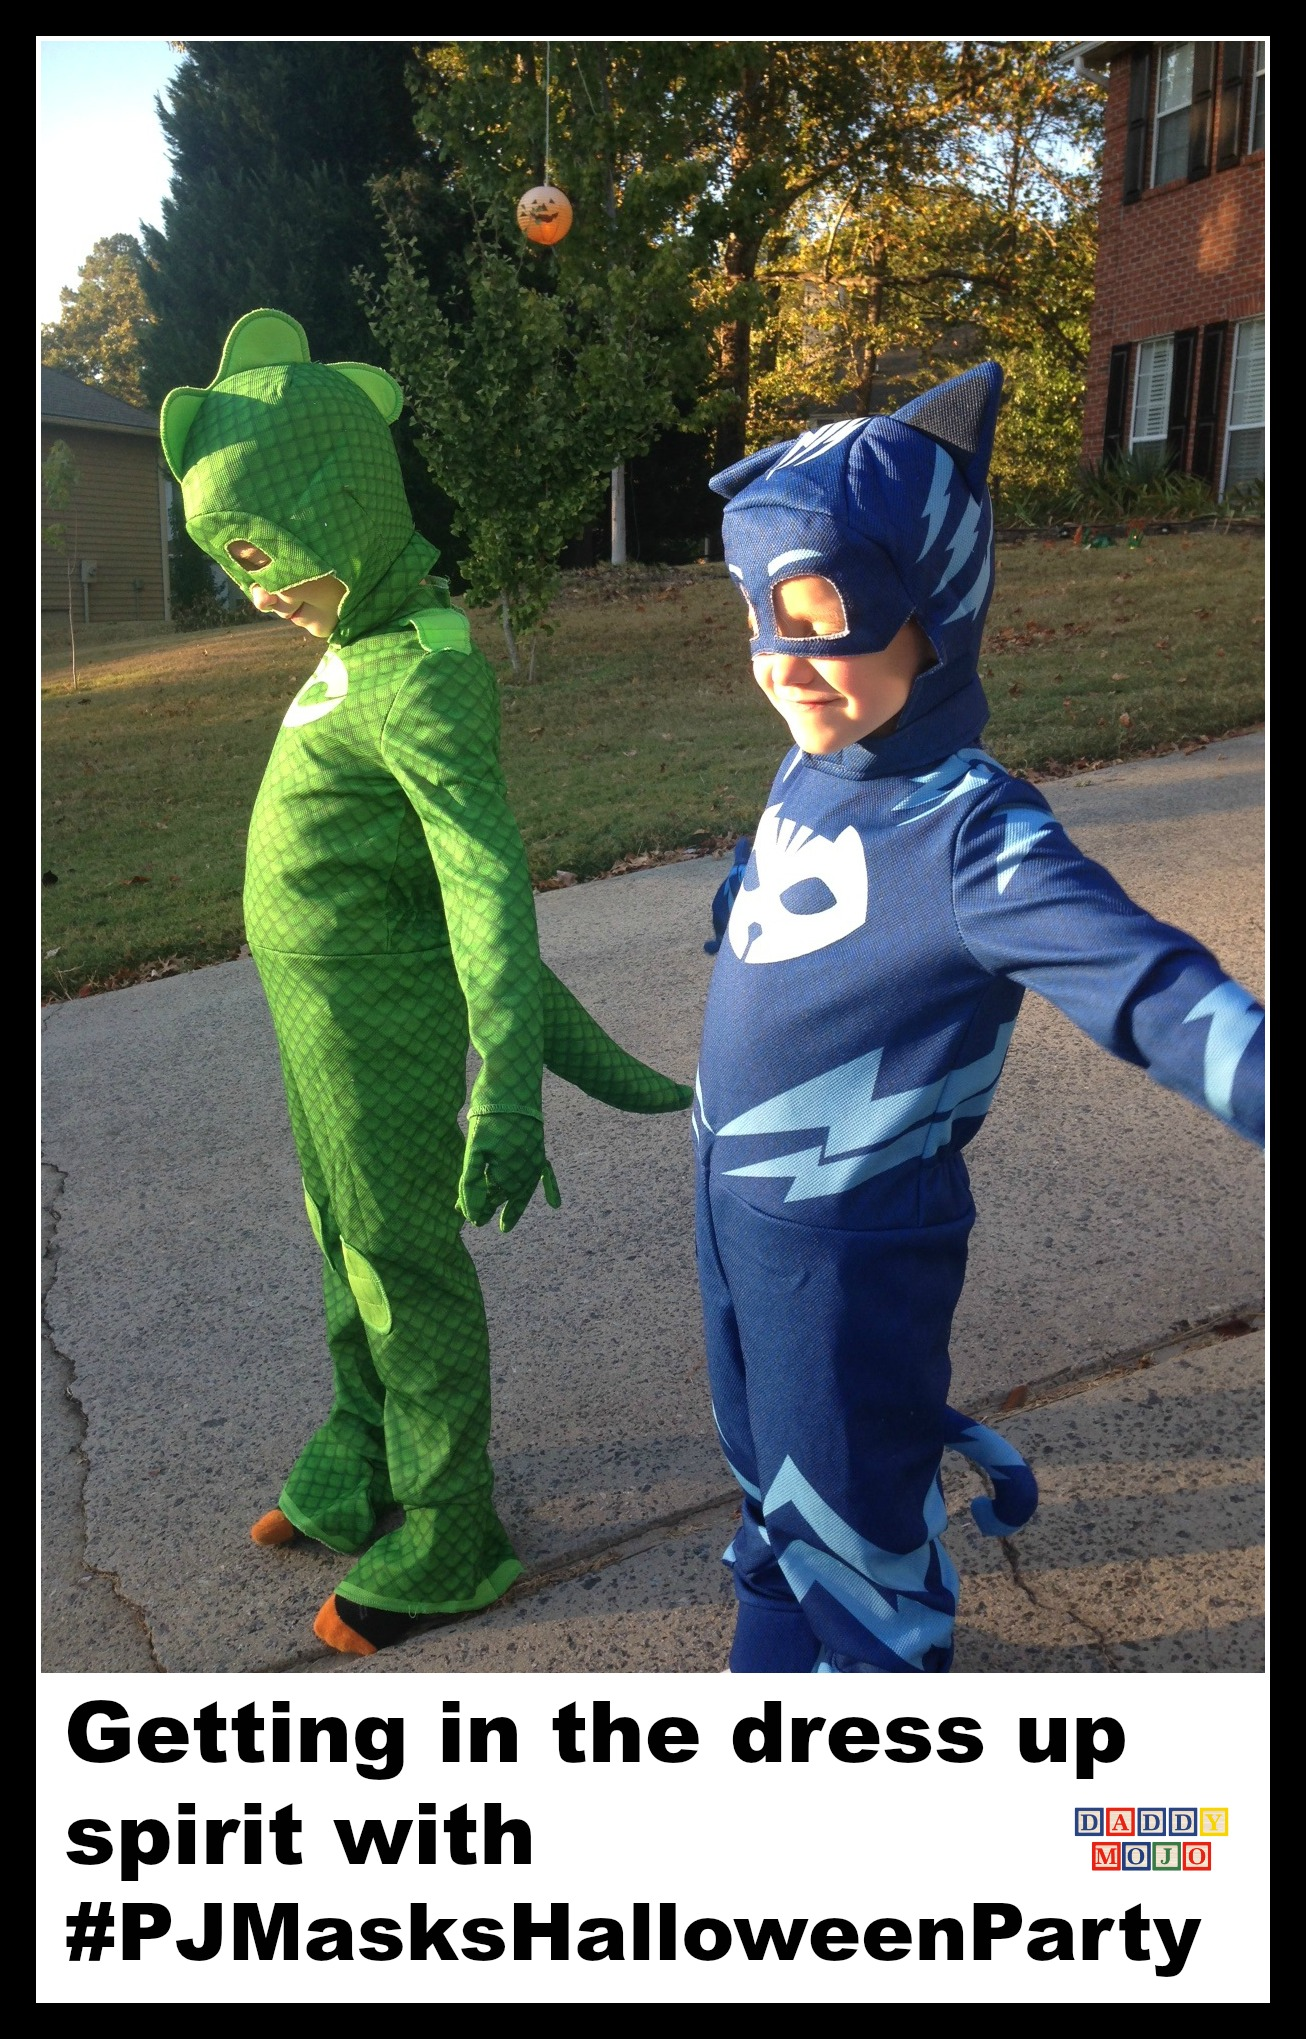 Getting in the dress up spirit with #PJMasksHalloweenParty